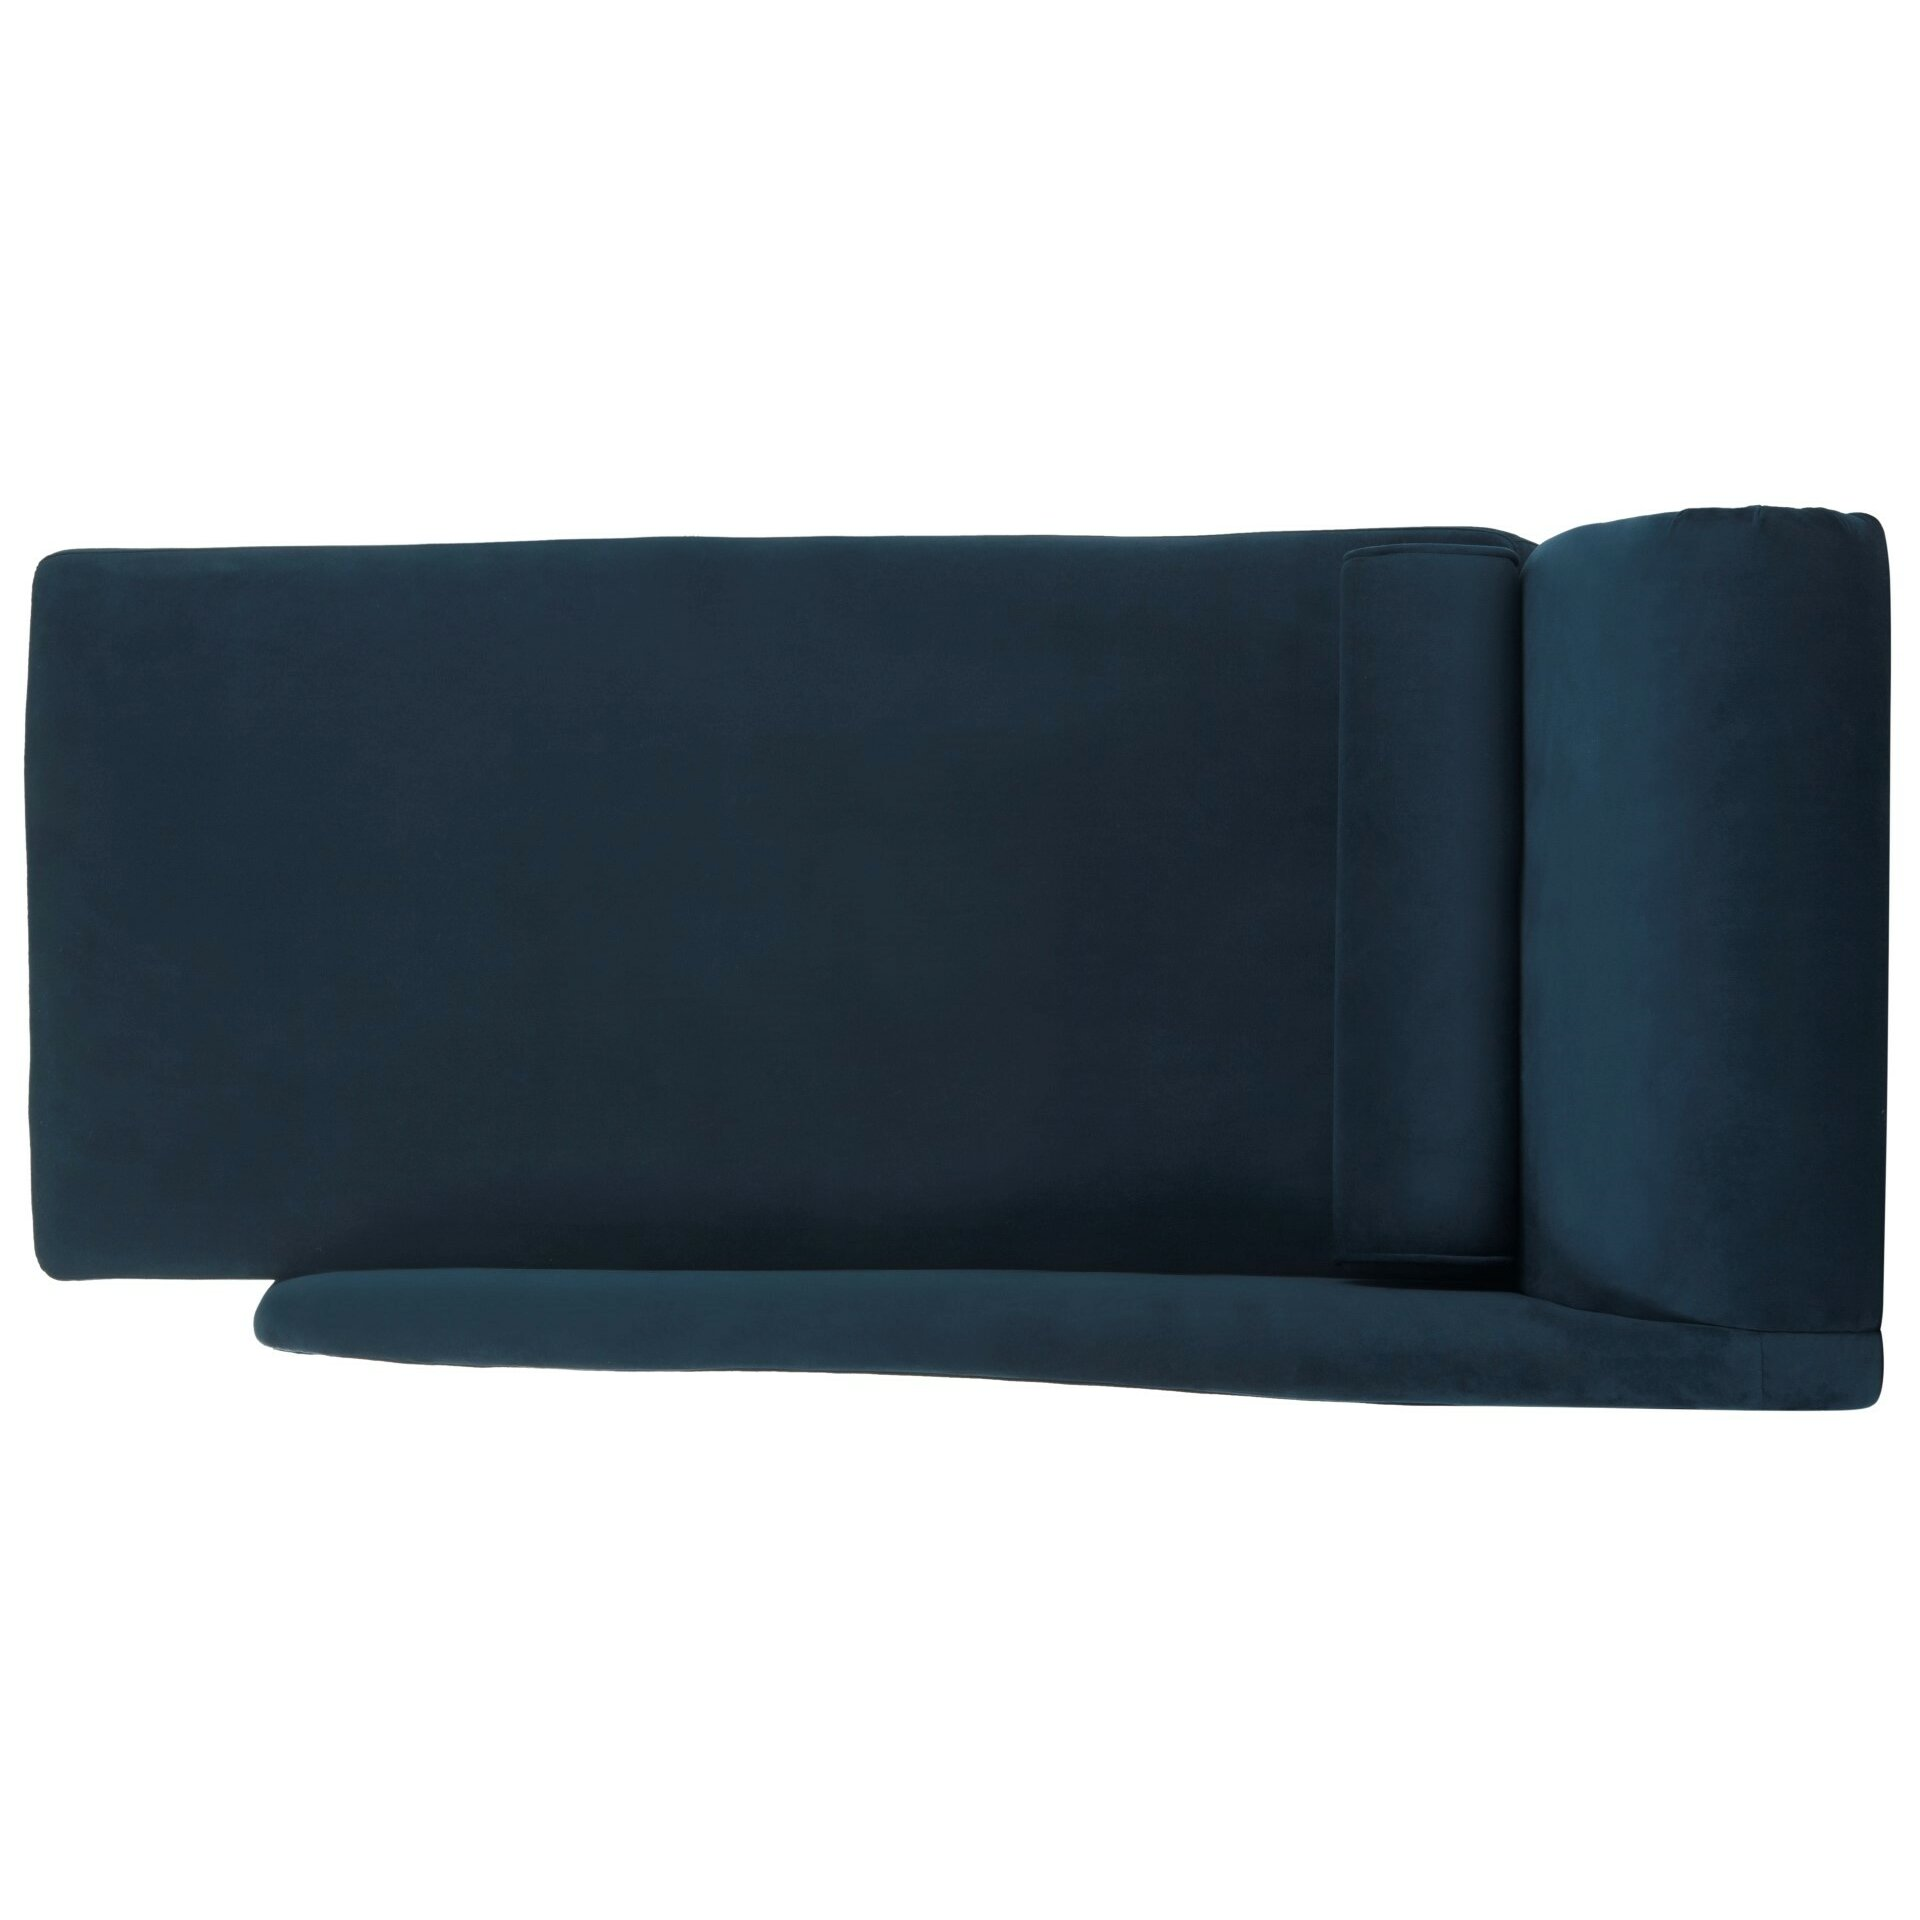 Mercer41™ Smethwick Chaise Lounge & Reviews